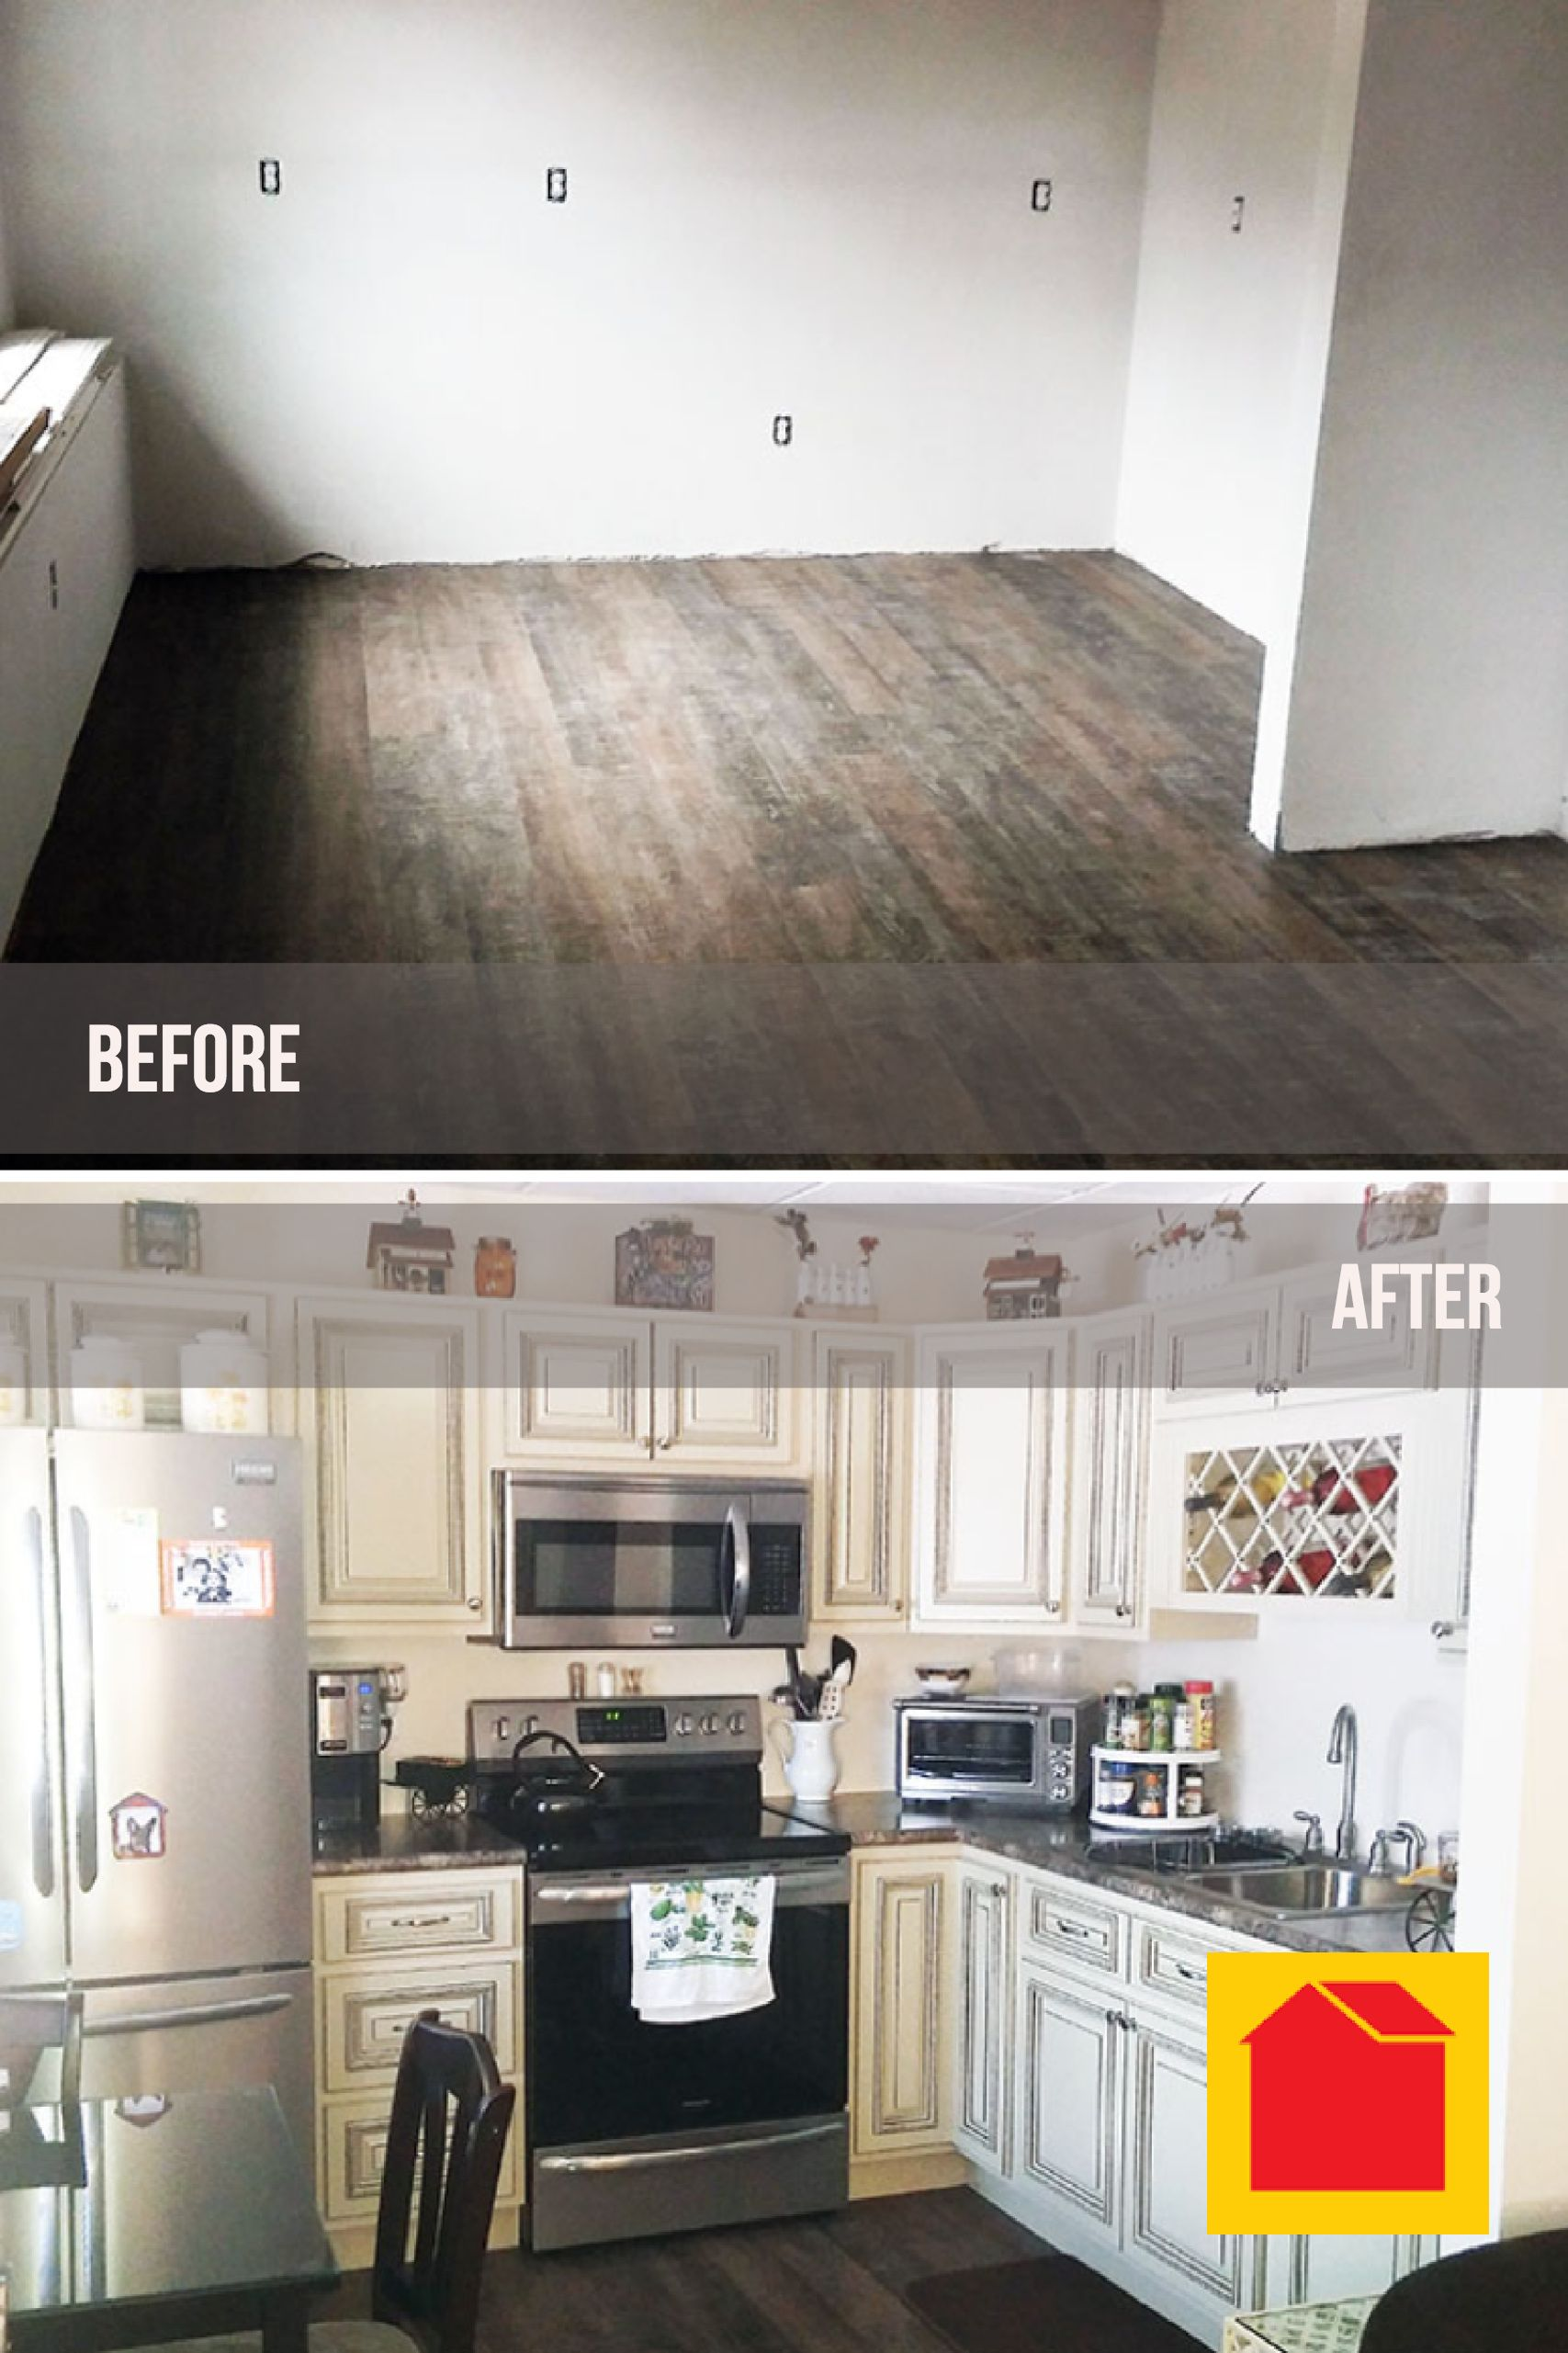 Full Kitchen Renovation With Before And After Pictures Kitchen Plans Kitchen Renovation Building A New Home